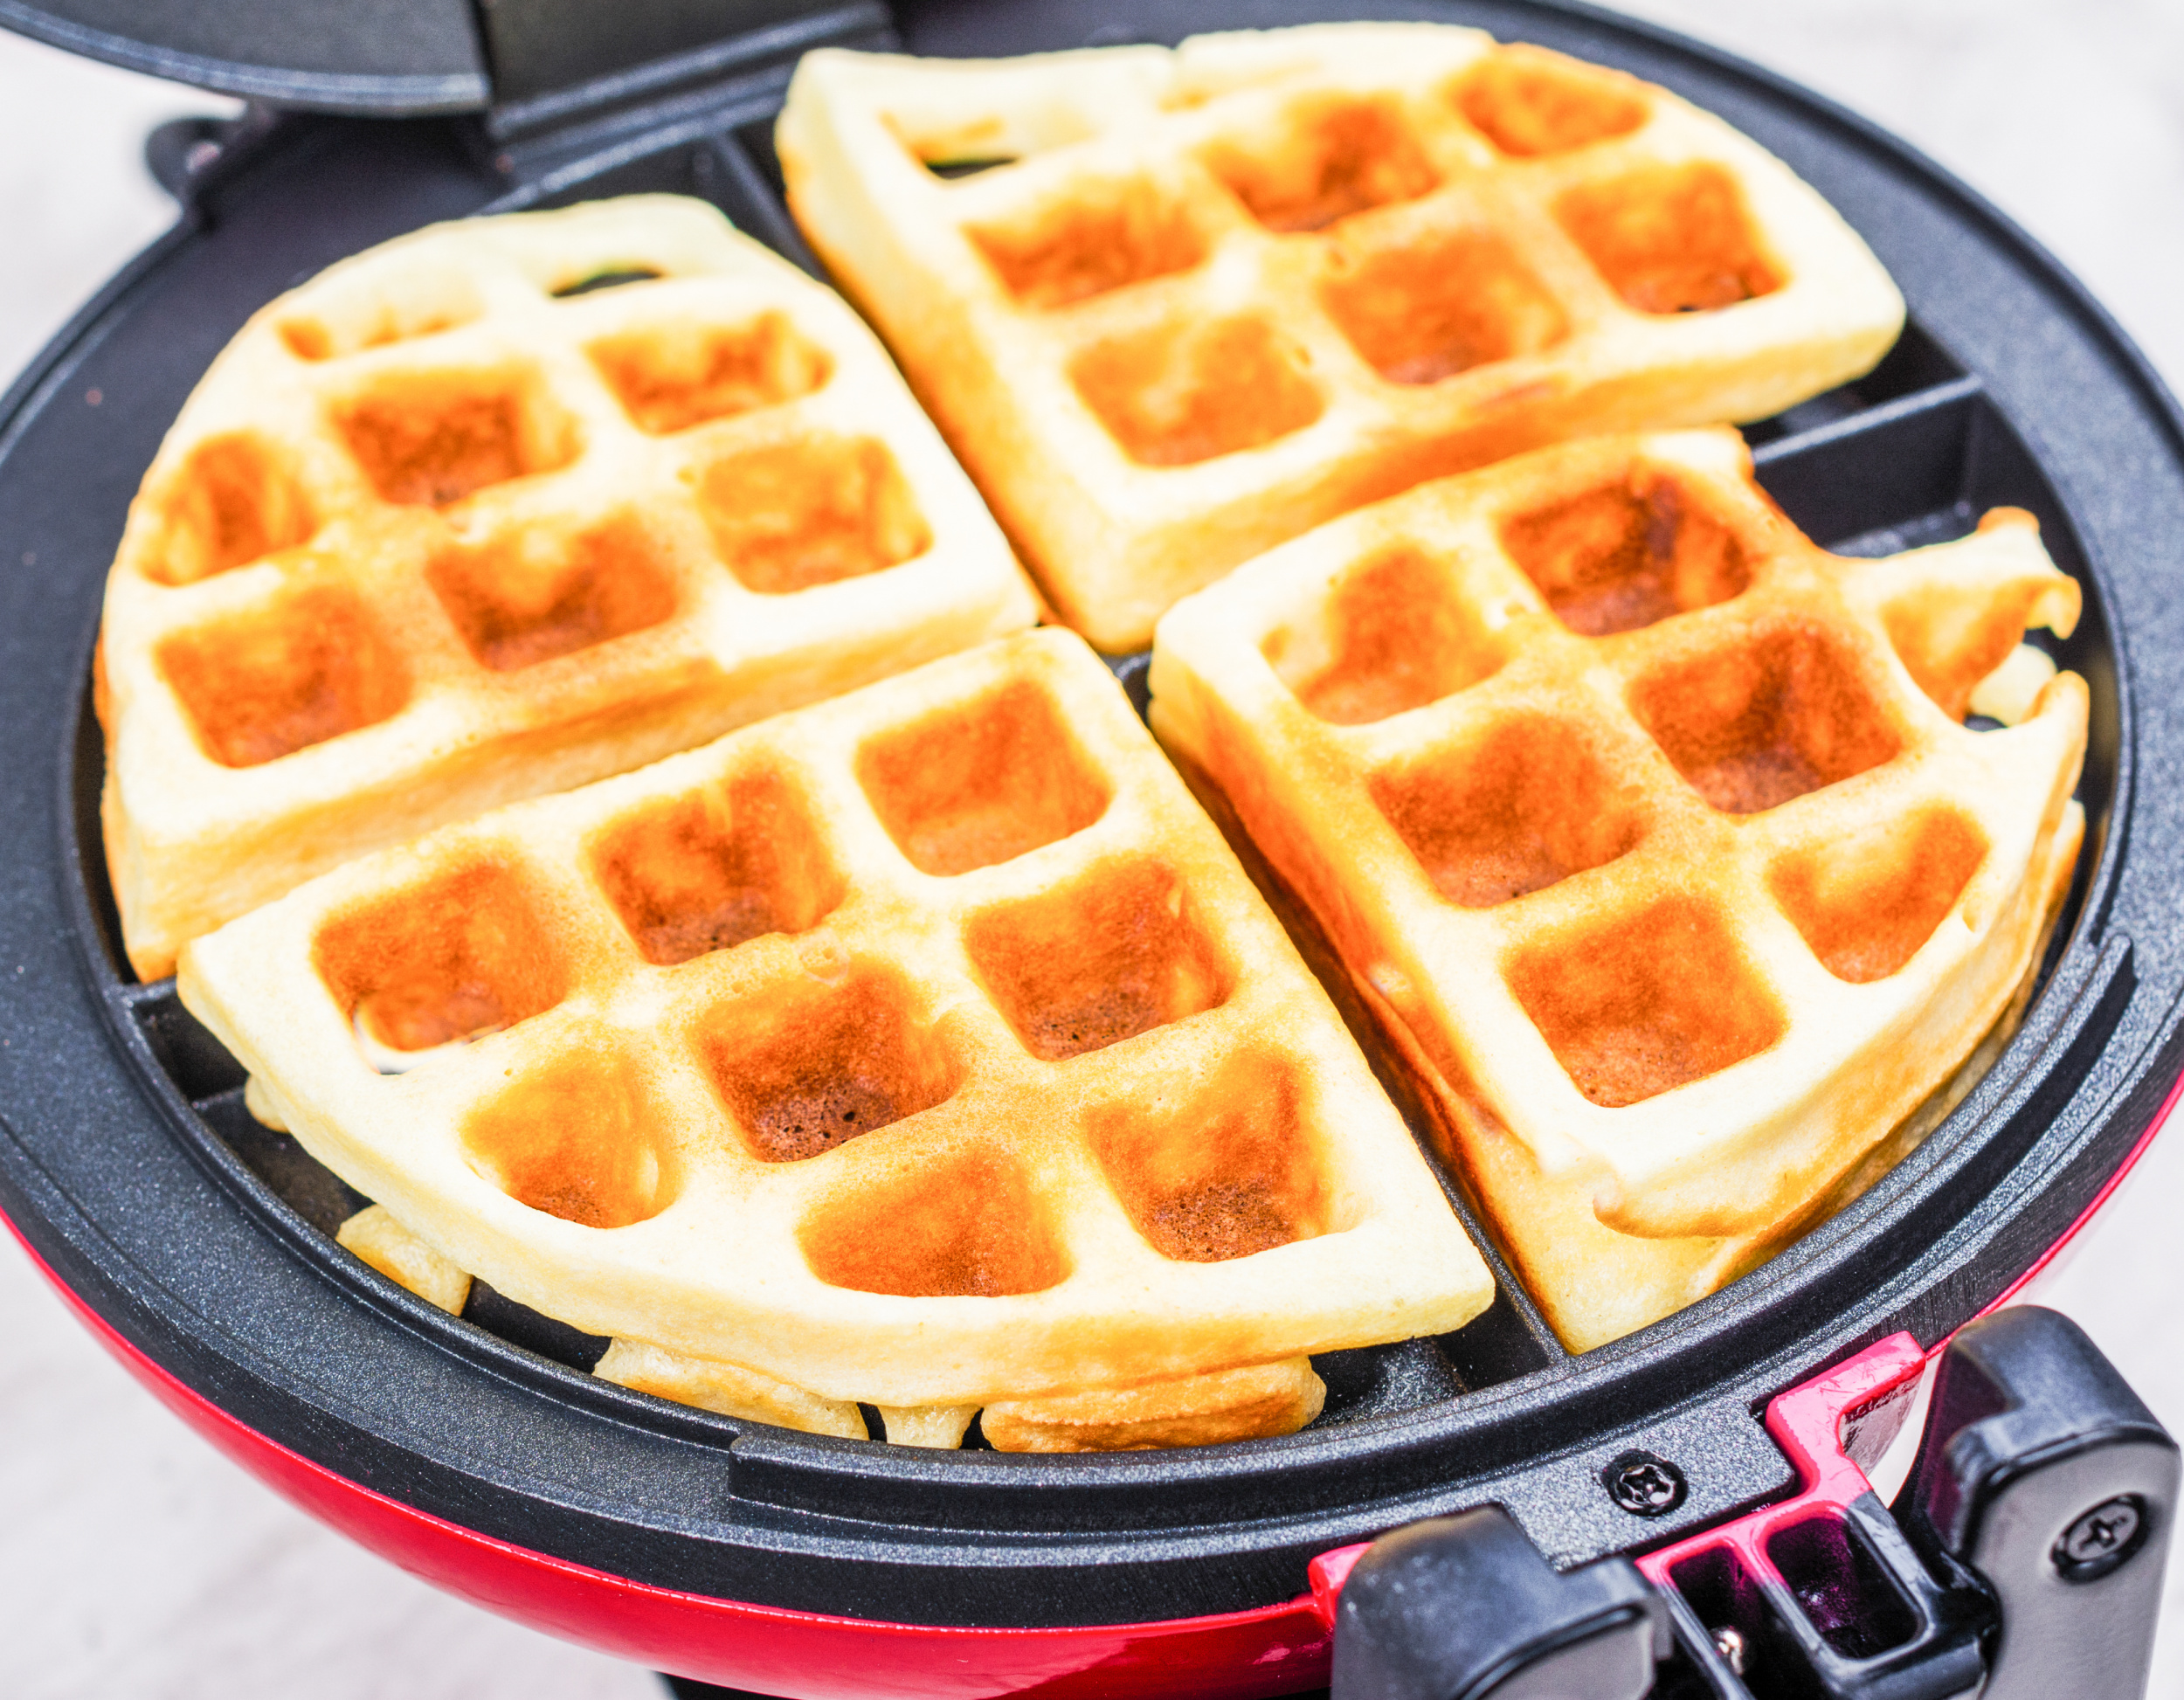 keto waffles made in red waffle iron